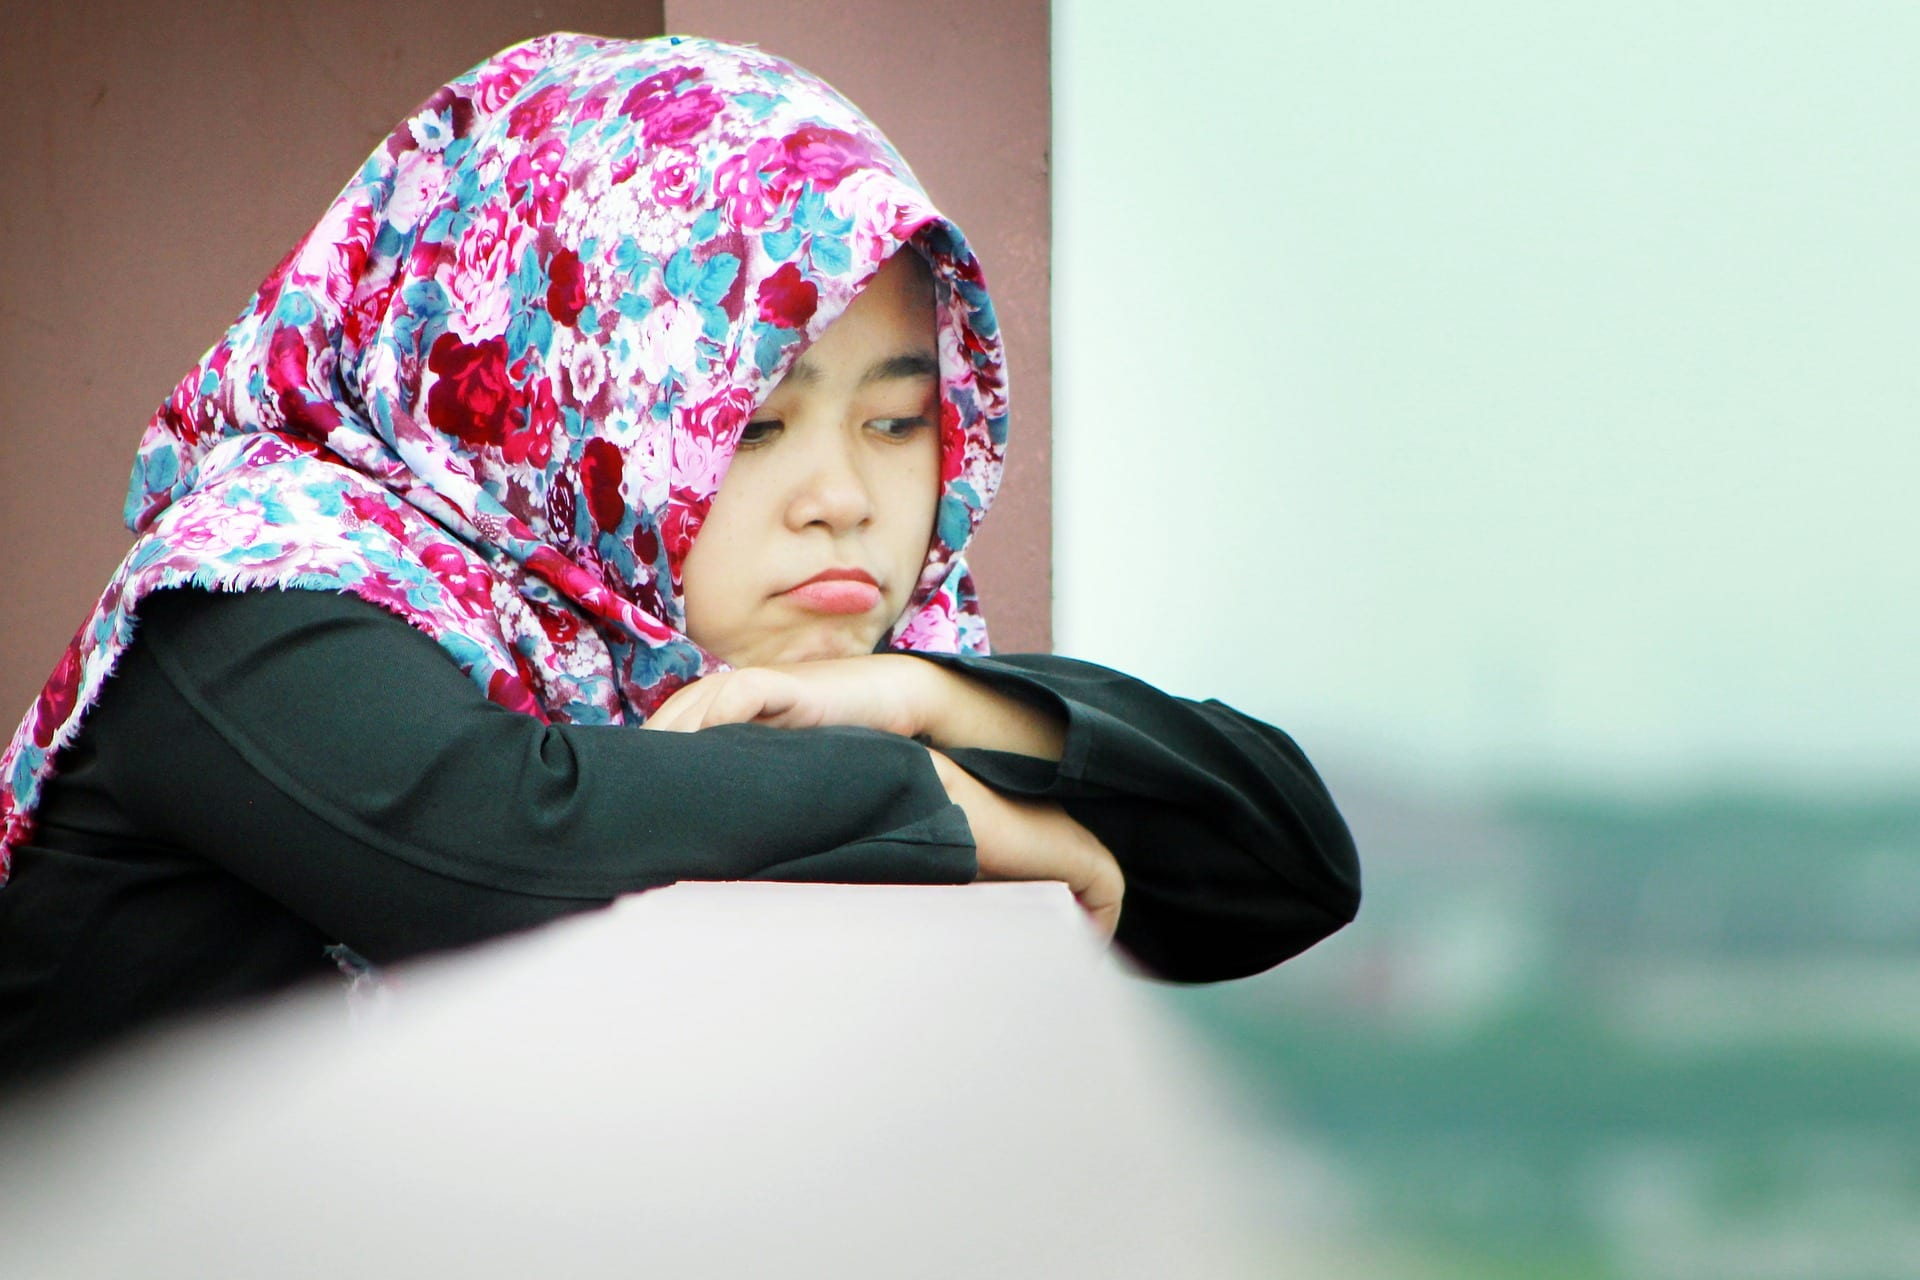 A young girl in a hijab looking forlorn.